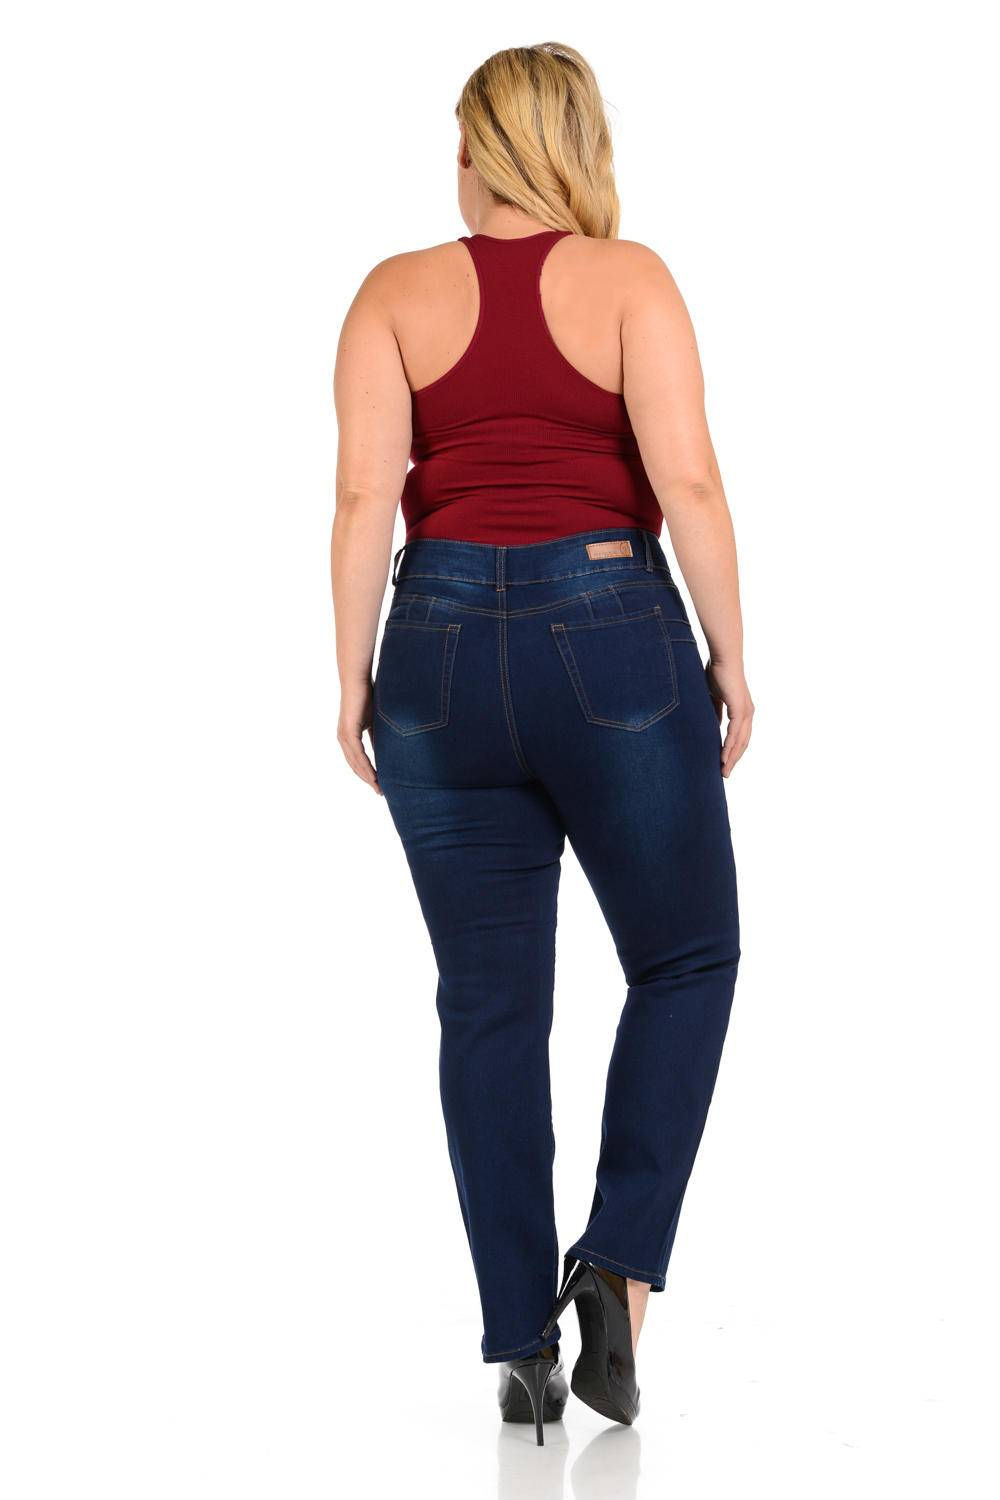 Pasion Plus Size High Waist Missy Up Jeans